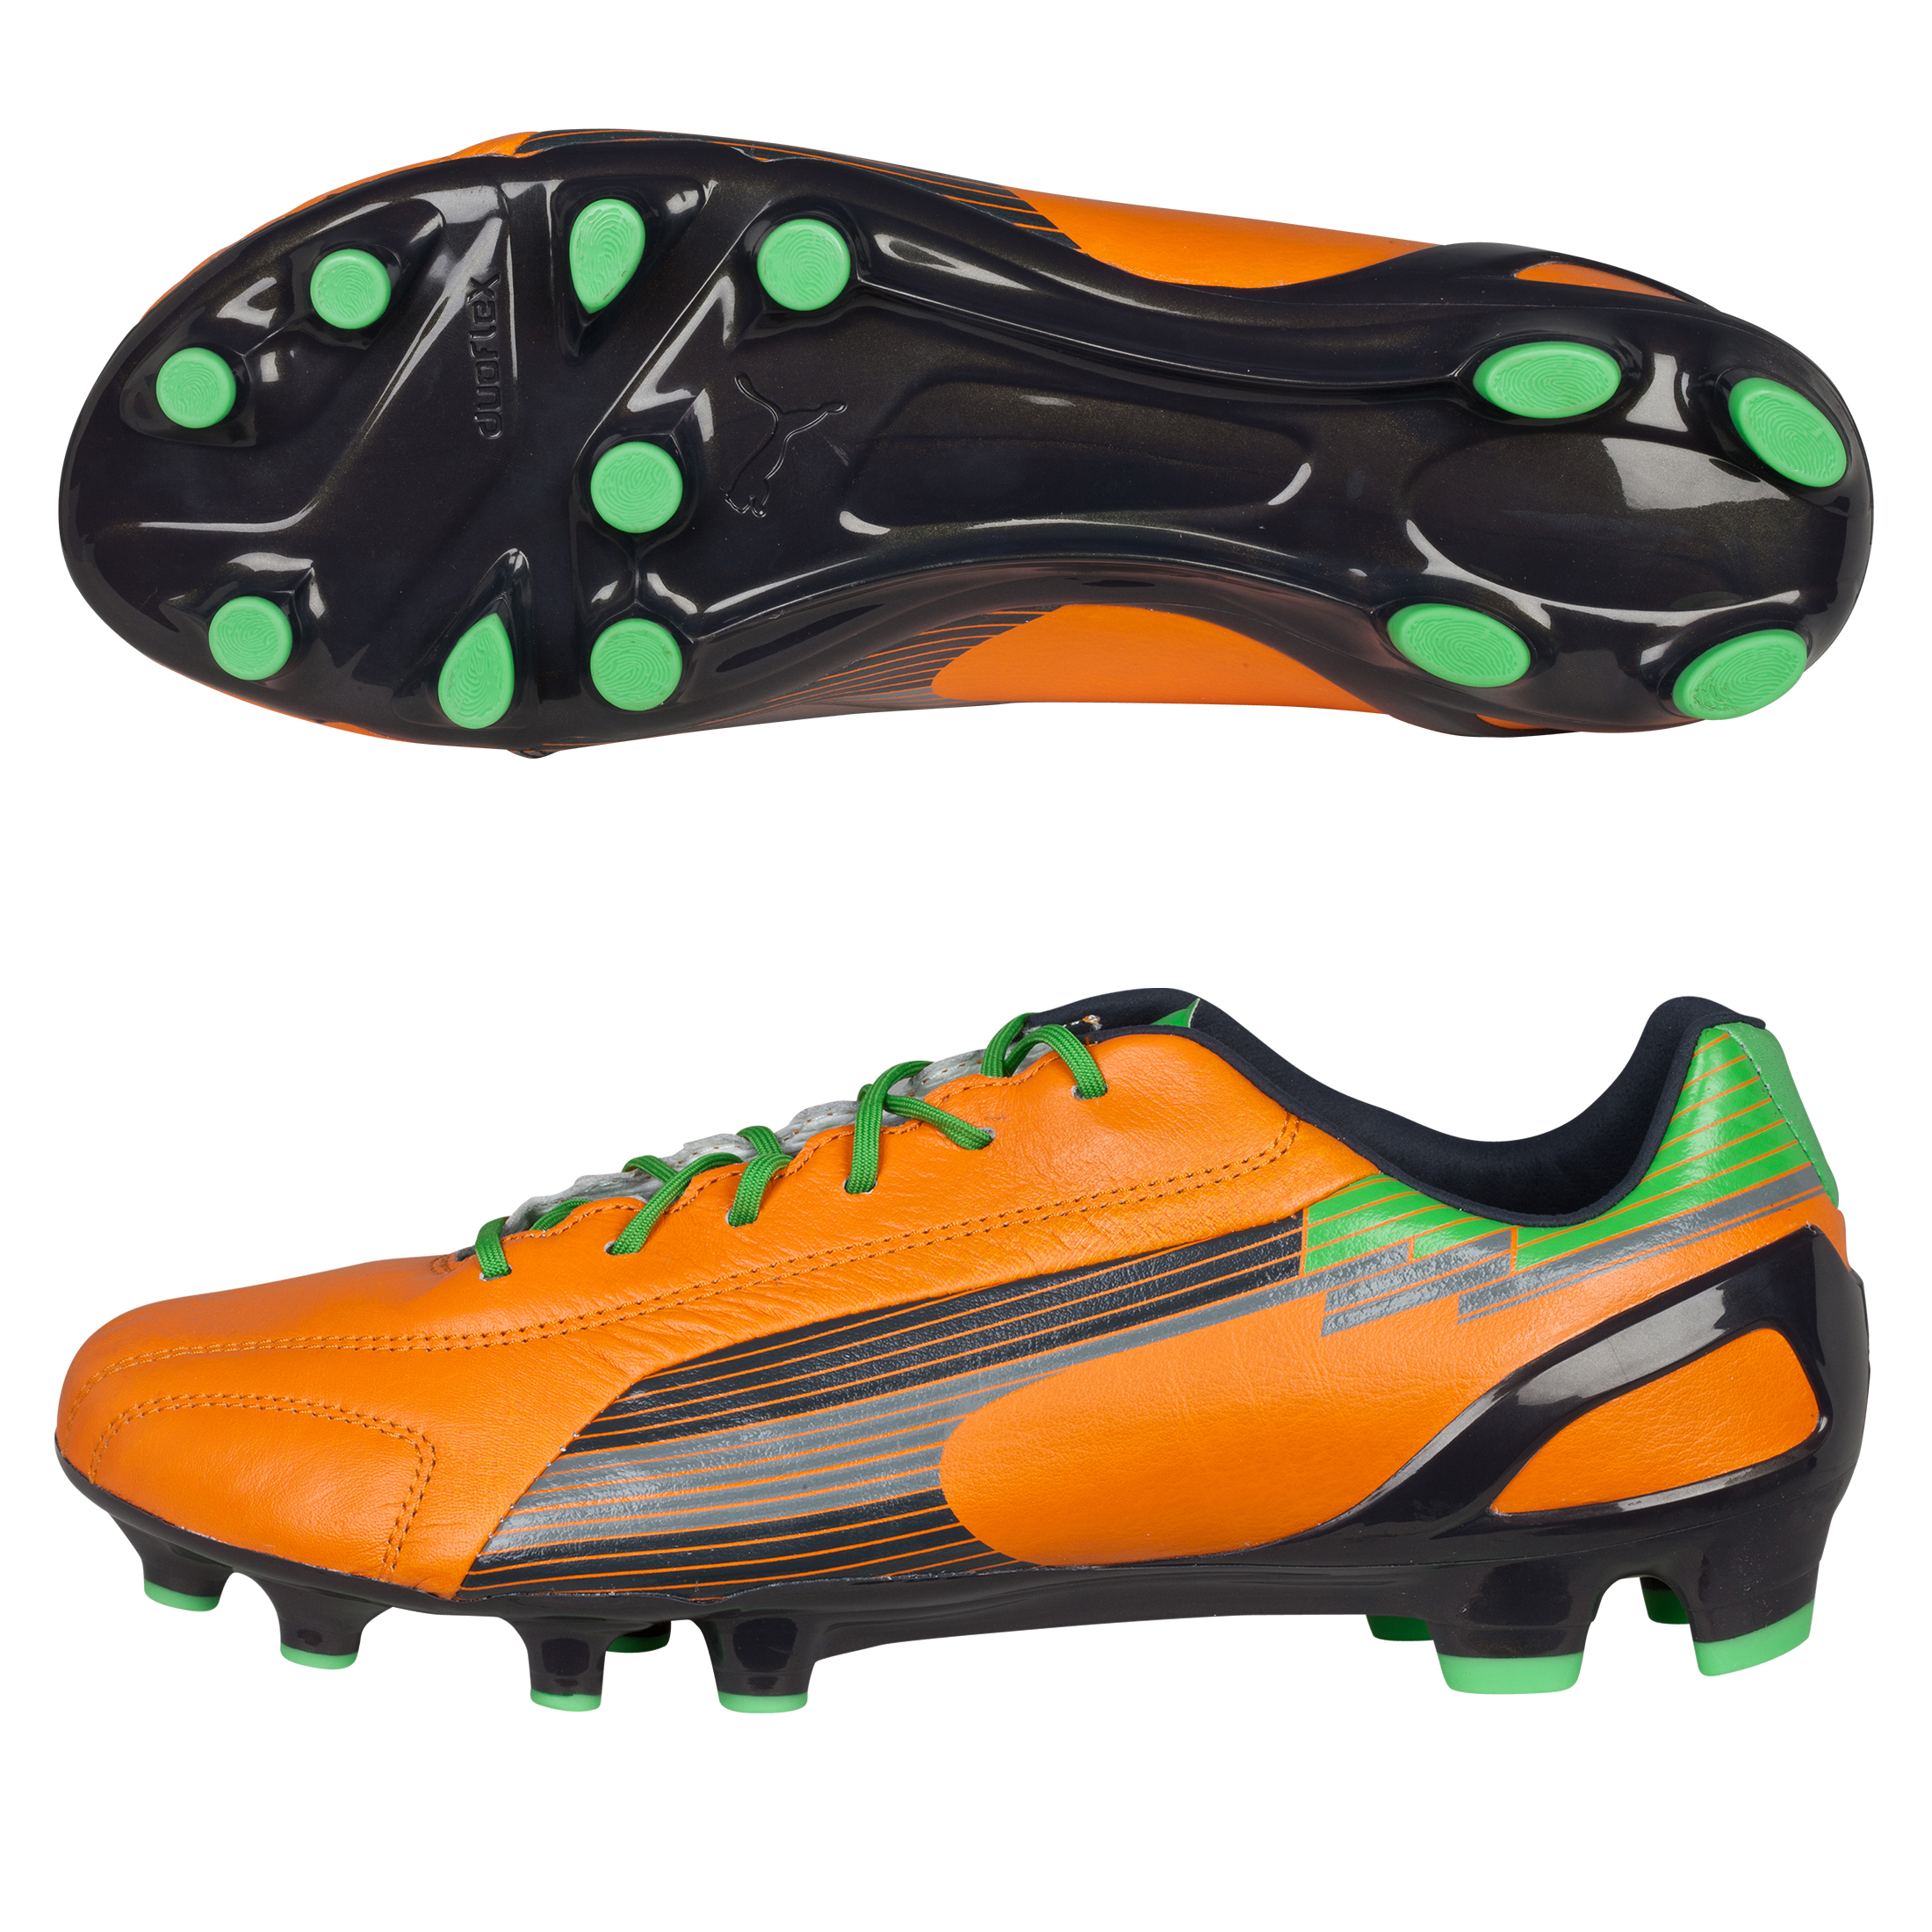 Puma Evospeed 1 Leather Firm Ground Football Boots - Flame Orange/Team Charcoal/Classic Green